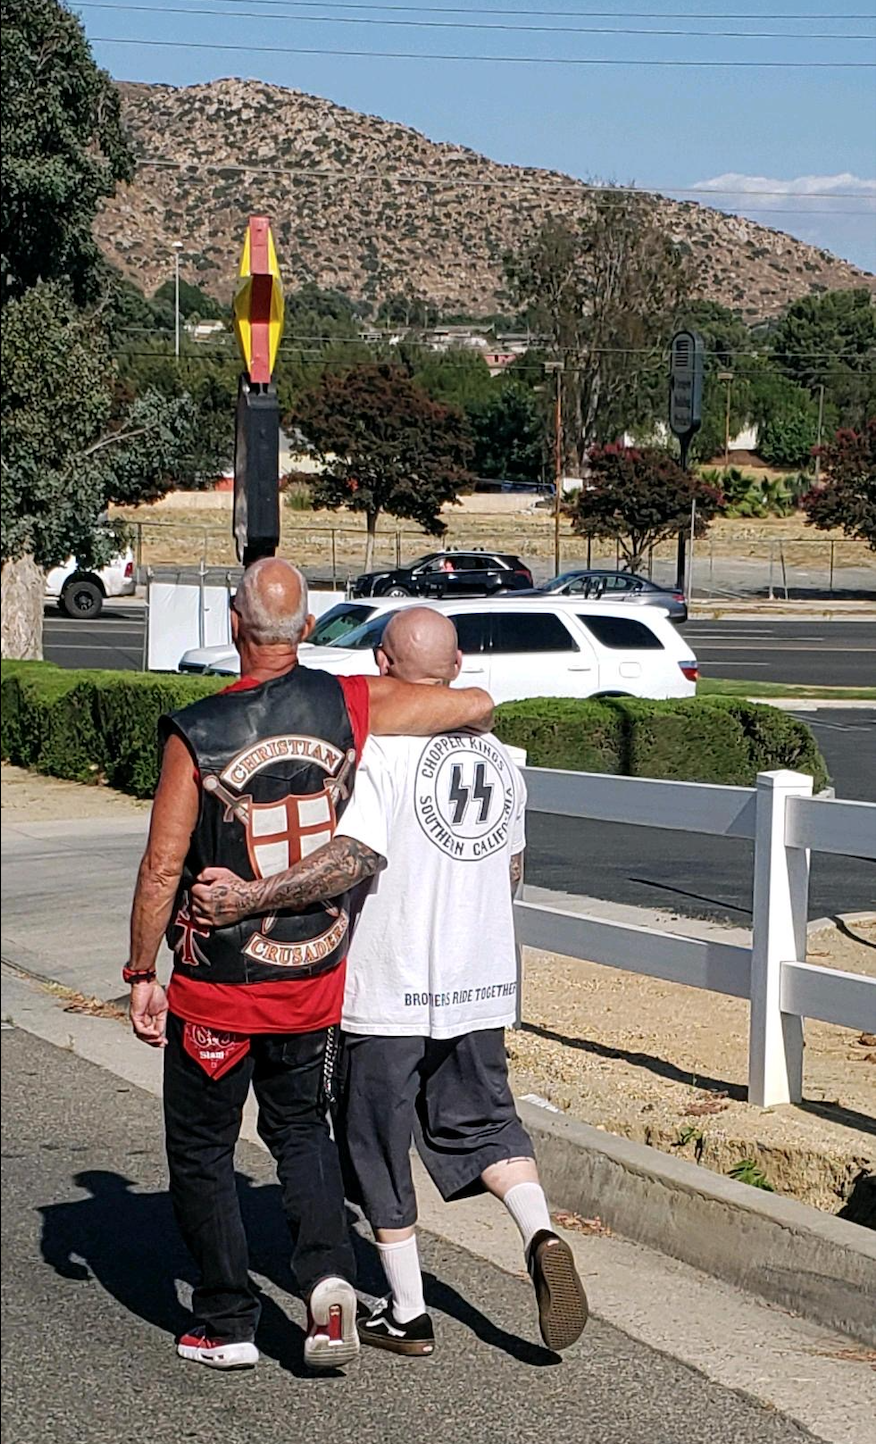 'Christian Crusaders' and Ryan Van De Car leaving the protest together. You can see the SS bolts on Van De Car's shirt clearly. Photo by 'Jen'